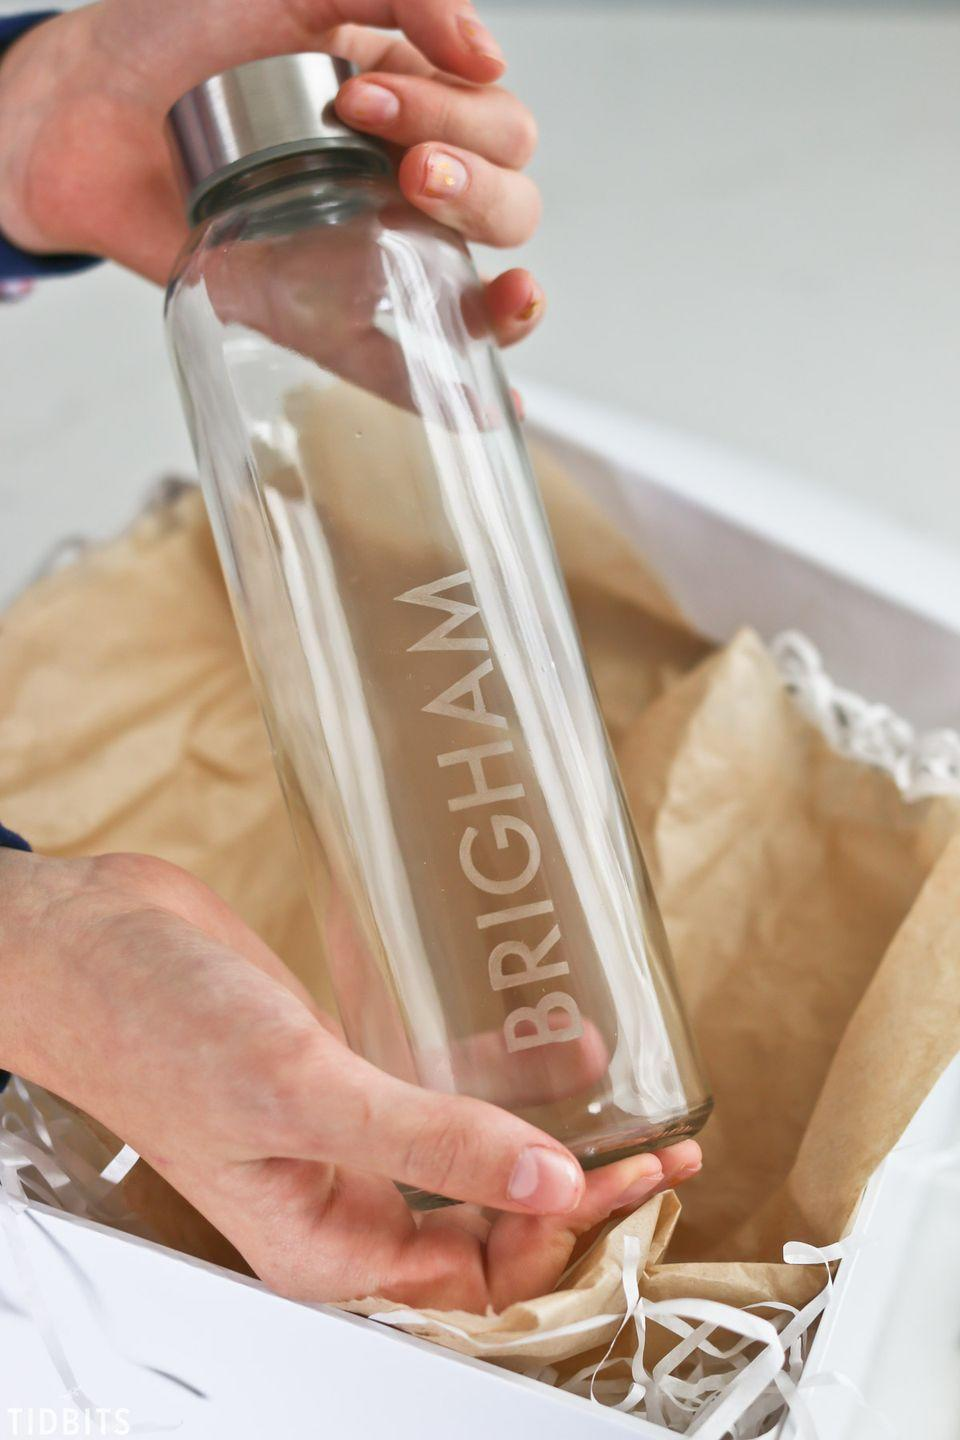 """<p>Put dad or your husband's mark on a sleek glass water bottle. All you need are stencils and some etching cream. </p><p><a href=""""https://www.tidbits-cami.com/etched-glass-water-bottles/"""" rel=""""nofollow noopener"""" target=""""_blank"""" data-ylk=""""slk:Get the tutorial."""" class=""""link rapid-noclick-resp"""">Get the tutorial.</a></p><p><a class=""""link rapid-noclick-resp"""" href=""""https://www.amazon.com/Armour-Etch-Glass-Etching-Cream/dp/B08MHY18H7?tag=syn-yahoo-20&ascsubtag=%5Bartid%7C10072.g.27603456%5Bsrc%7Cyahoo-us"""" rel=""""nofollow noopener"""" target=""""_blank"""" data-ylk=""""slk:SHOP ETCHING CREAM"""">SHOP ETCHING CREAM</a></p>"""